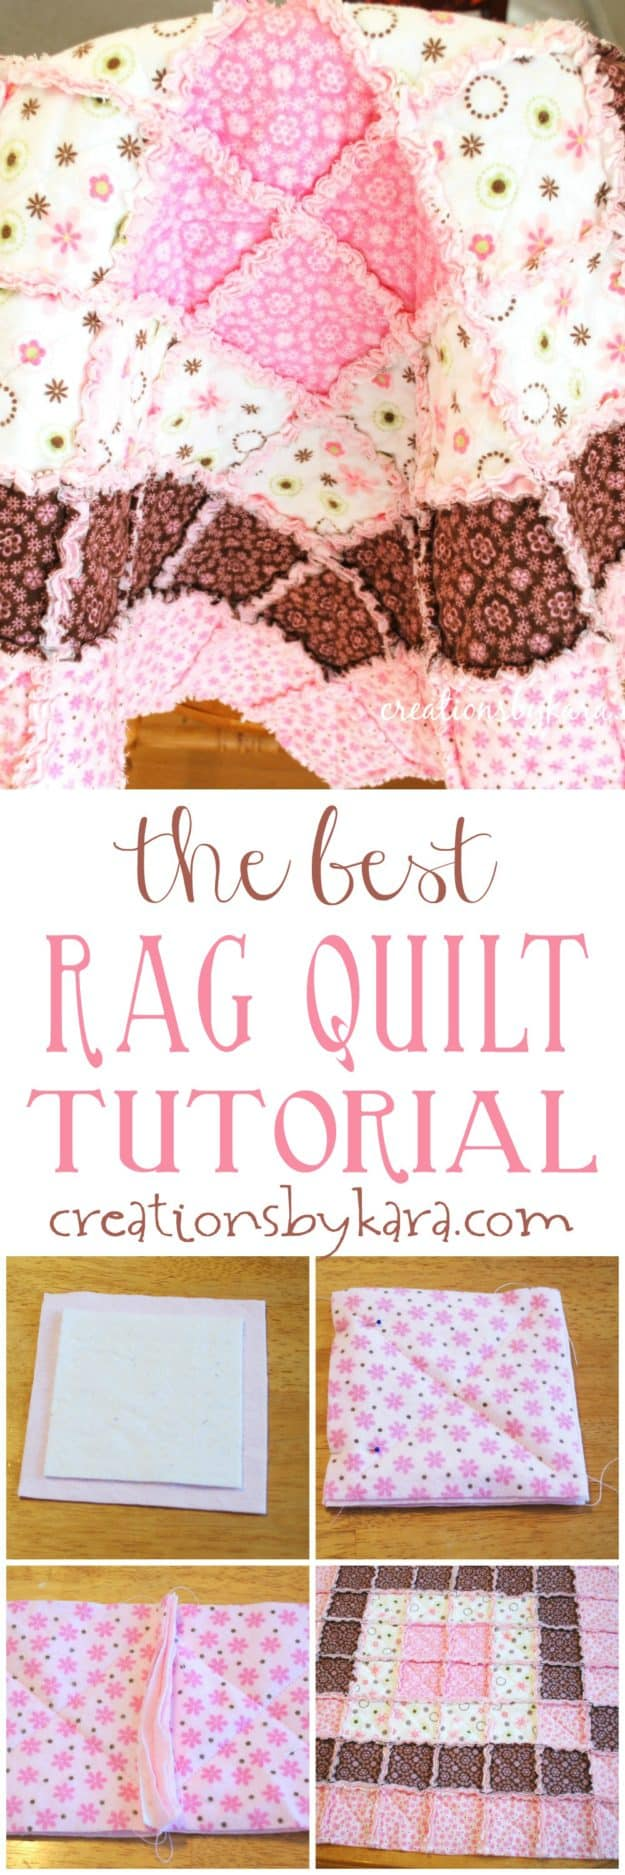 the best rag quilt tutorial photo collage